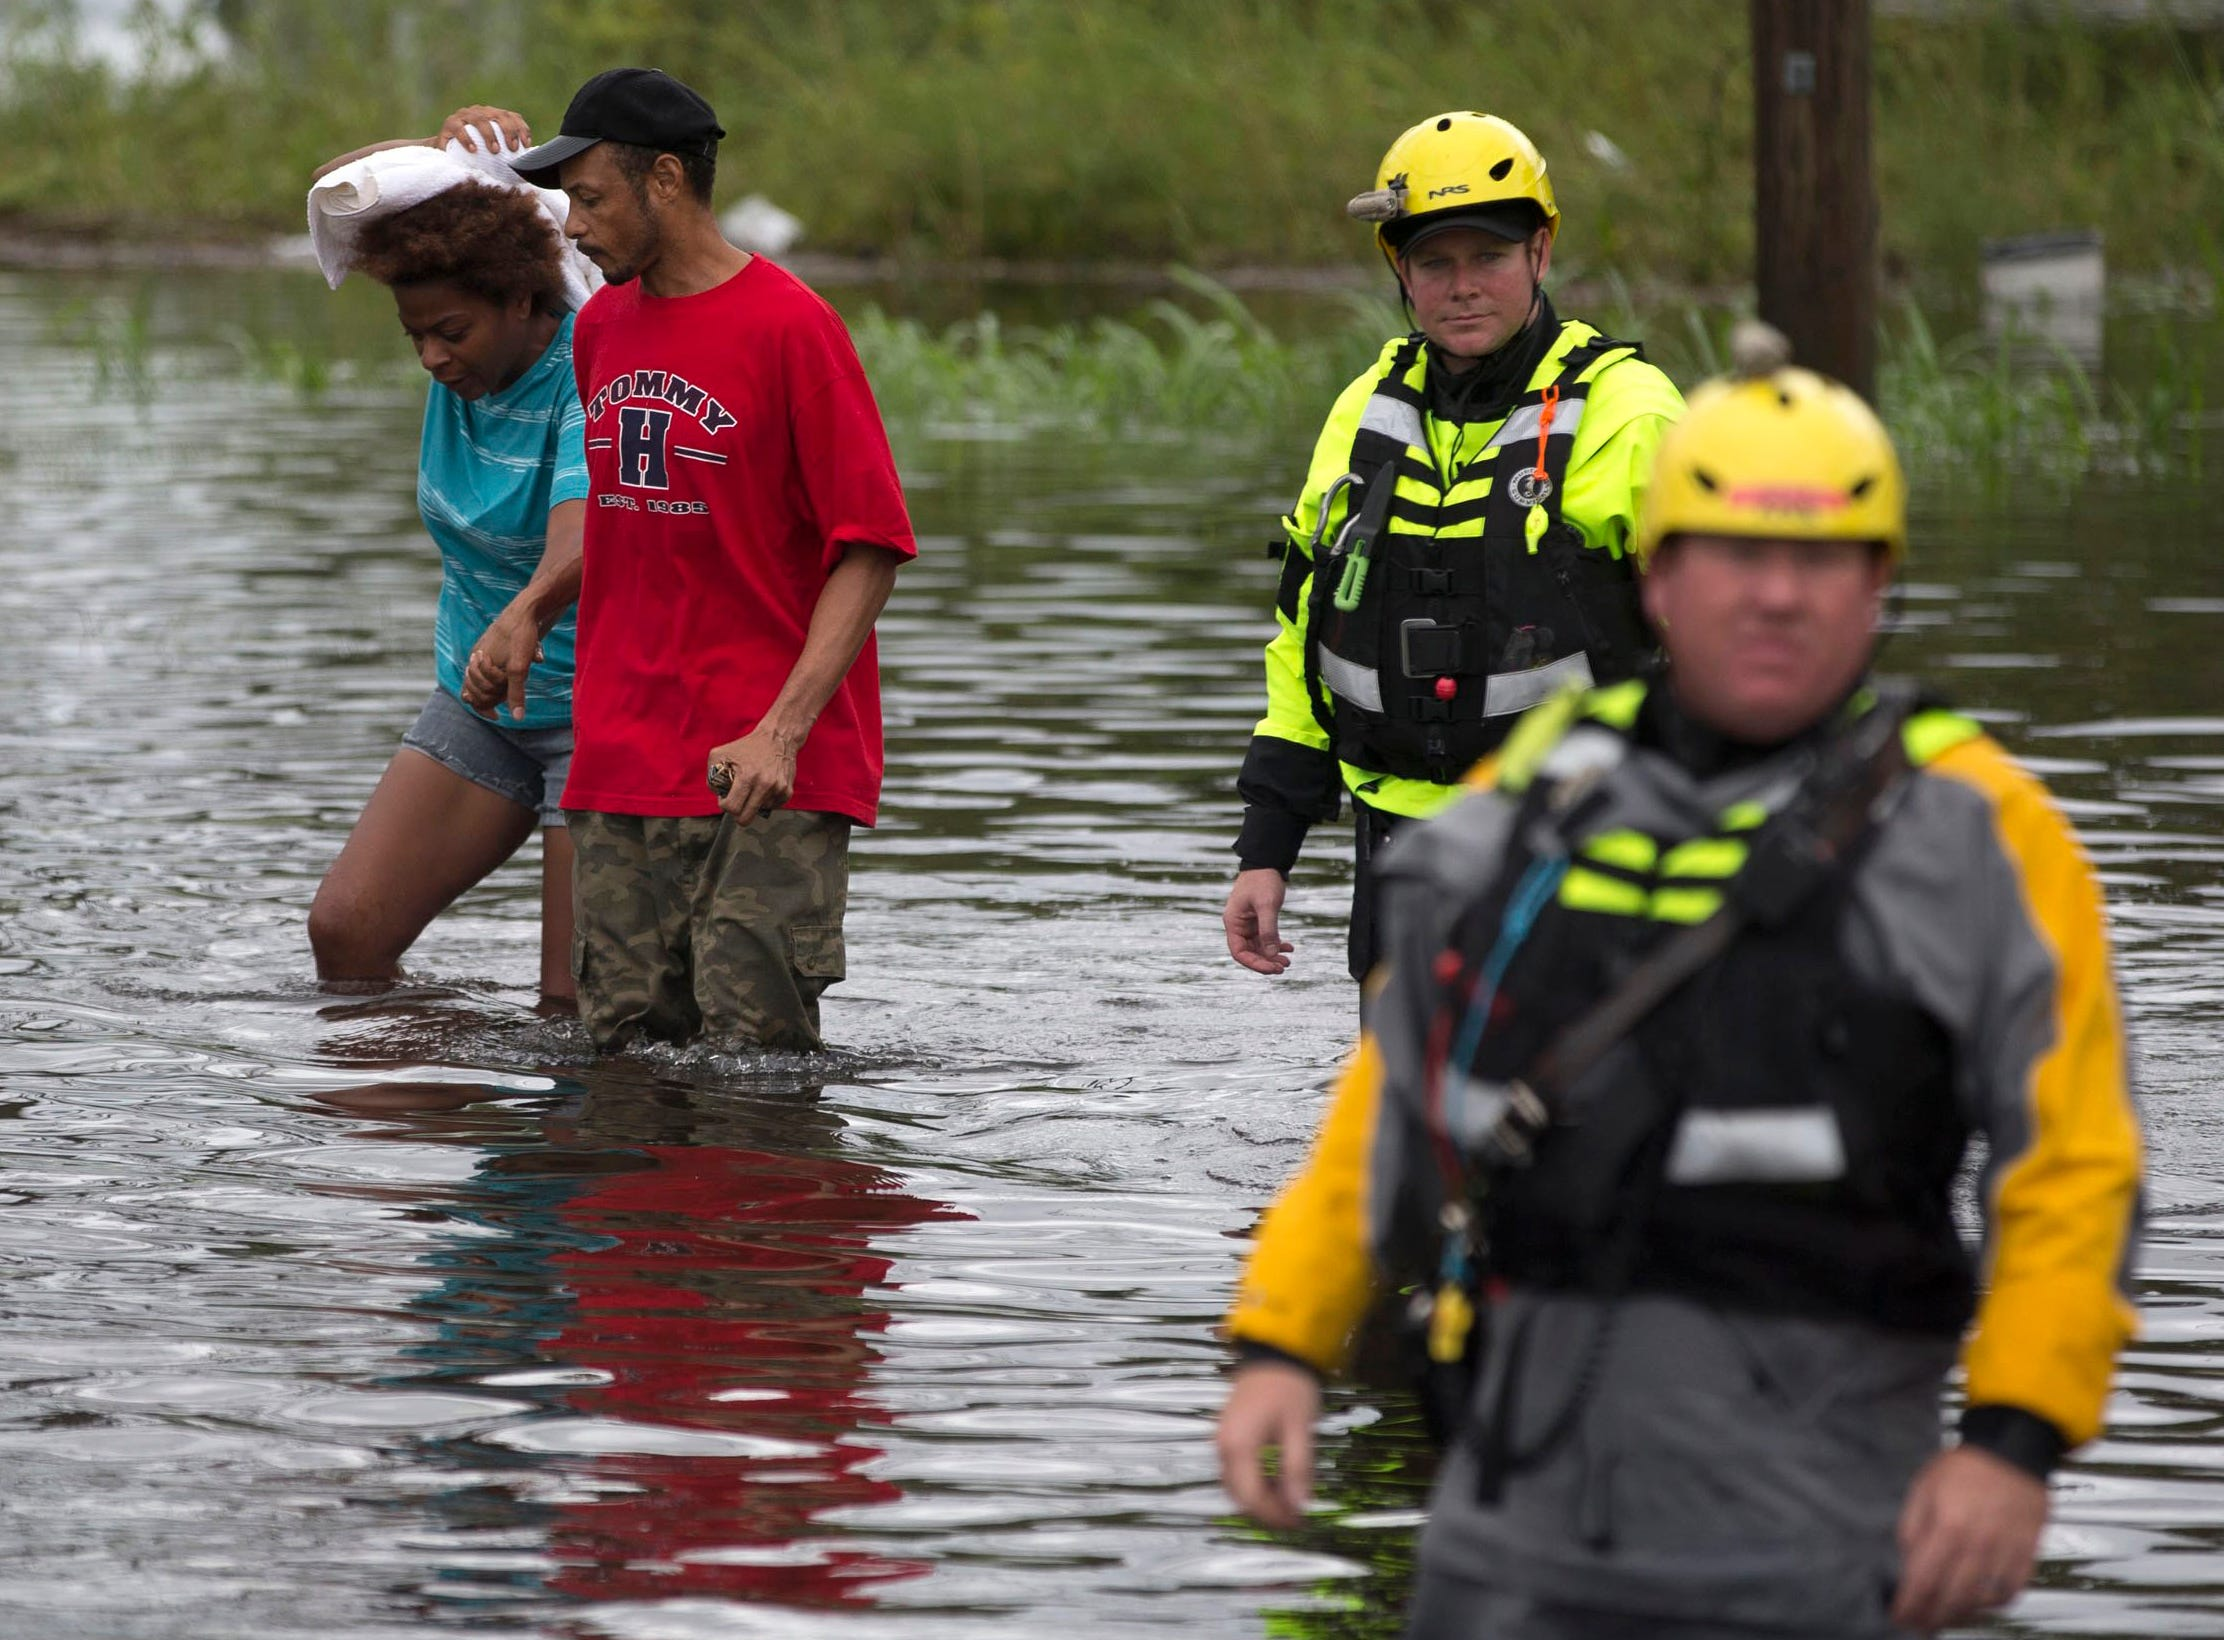 Members of the Greenville Fire Department swift water team help a couple evacuate their home following Florence, now a tropical storm, on Saturday, Sept. 15, 2018 in New Bern, N.C